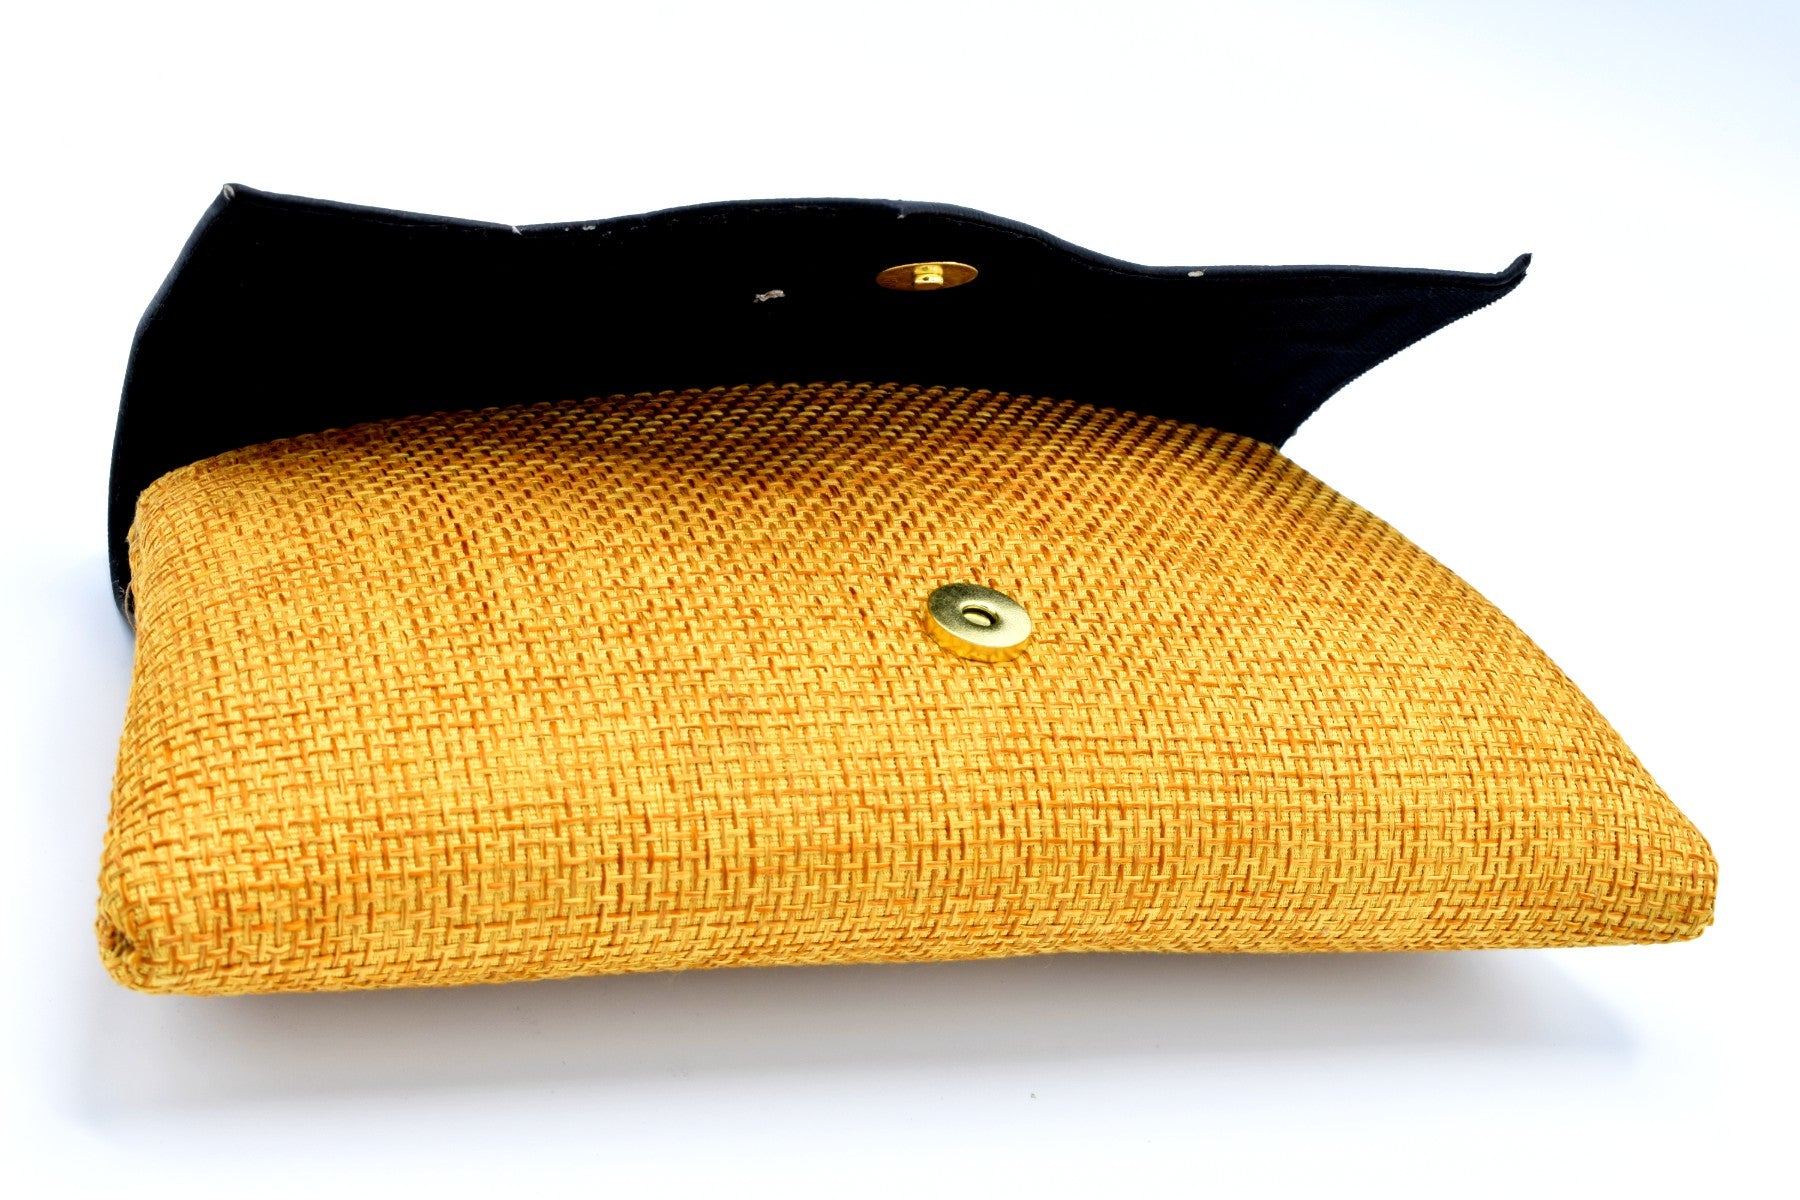 Black Leather on Gold Jute Medium-sized handmade Clutch Purse w/ Cleft - Kulcha Kernel